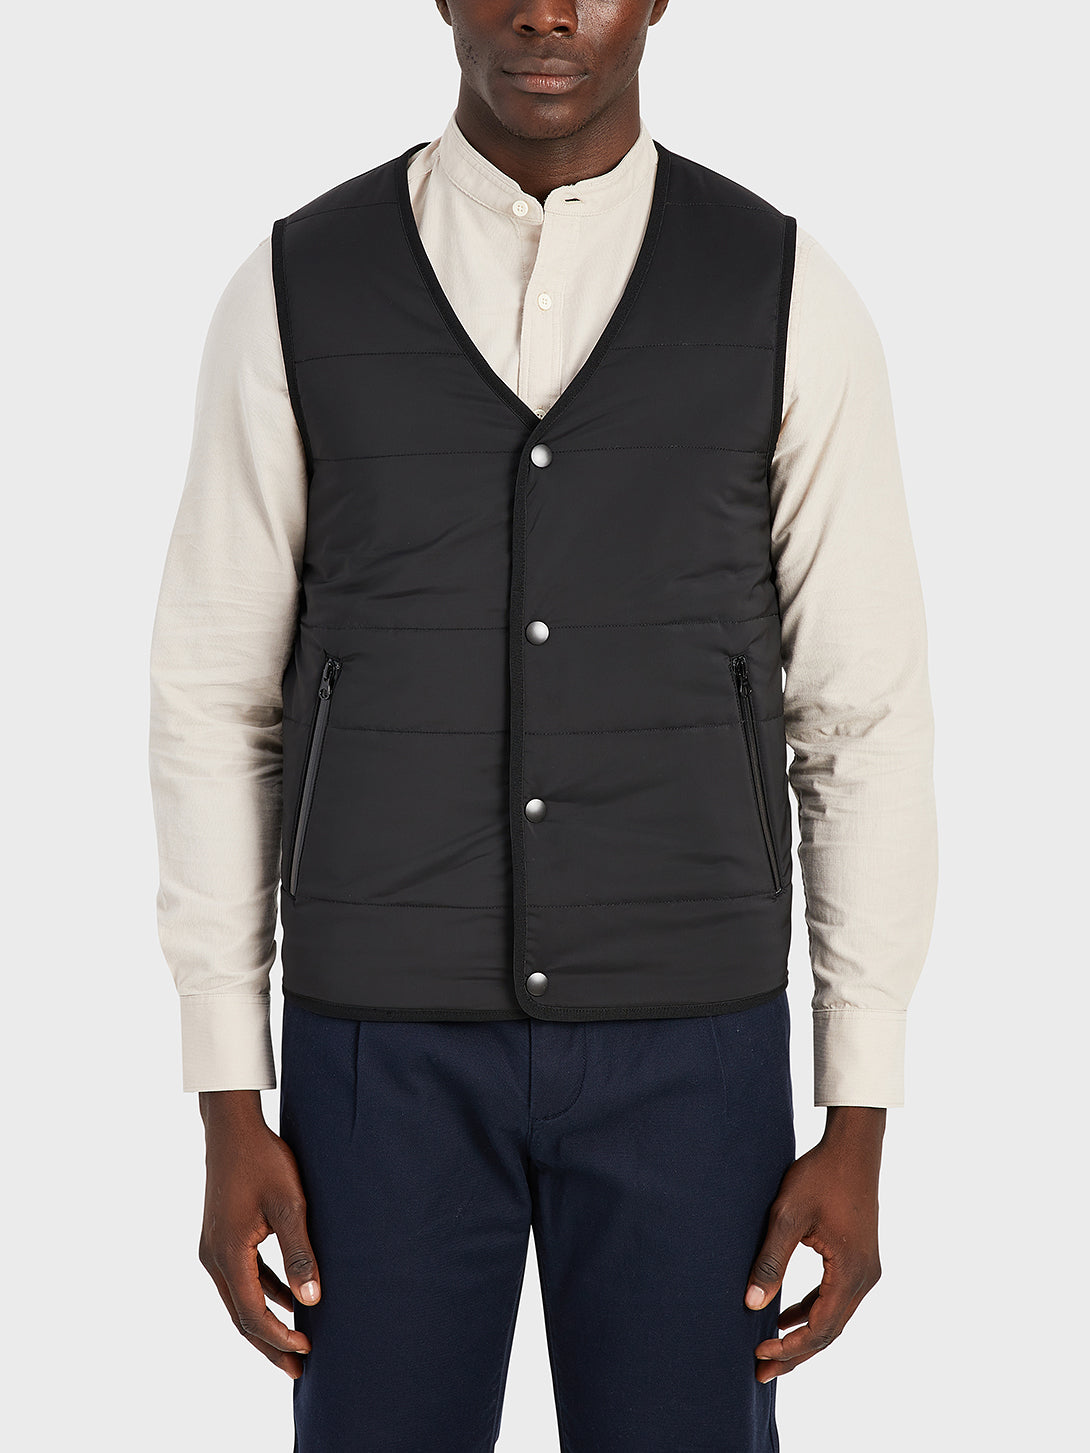 ONS Clothing Men's vest in DK GREY black friday deals